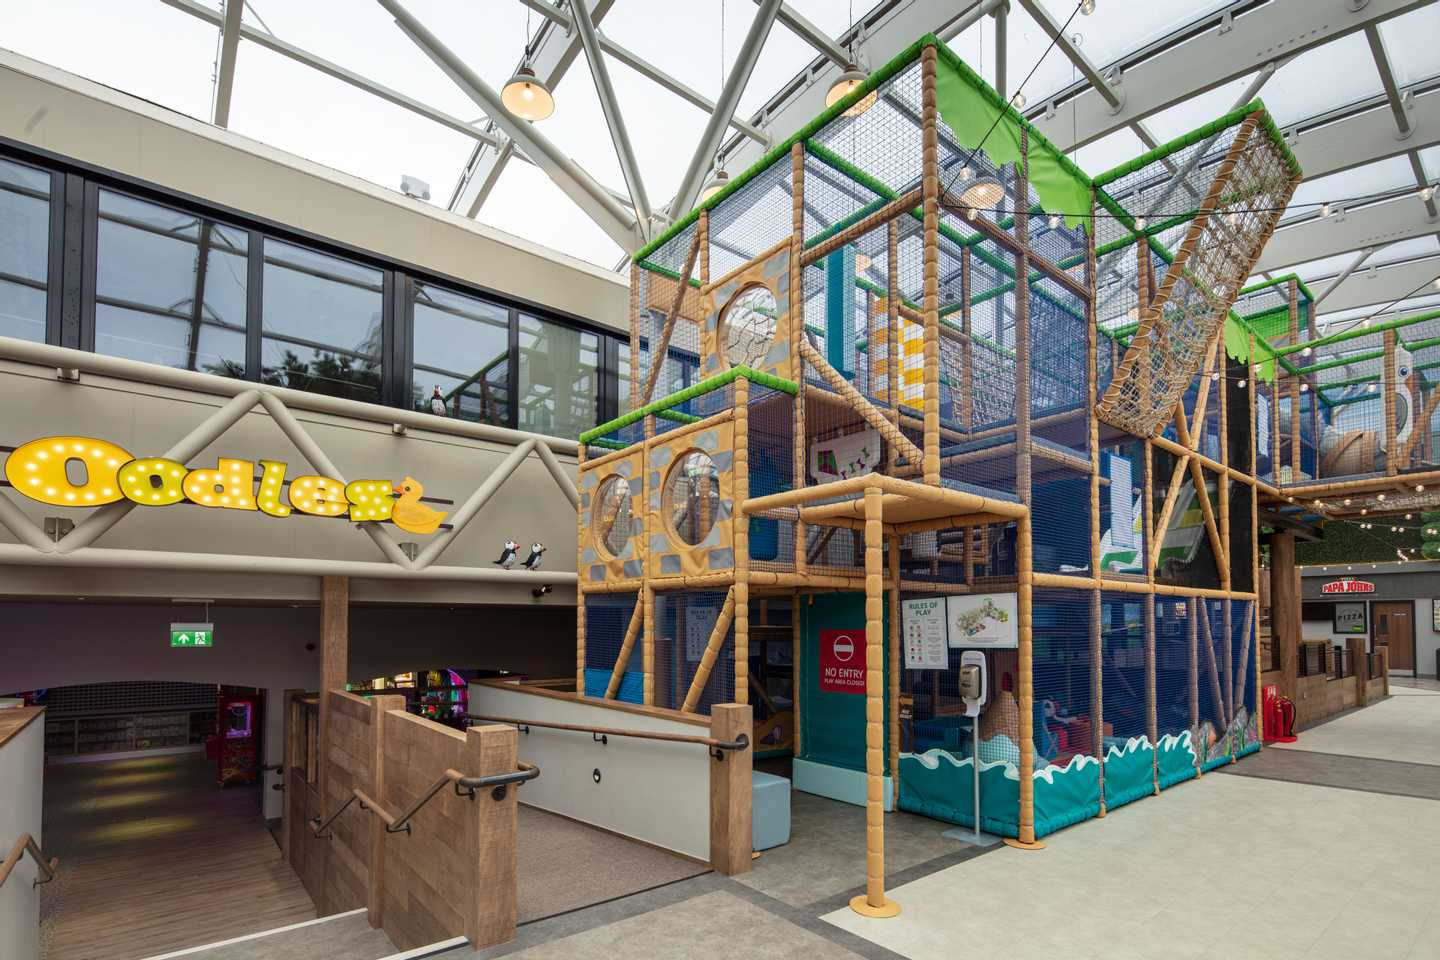 NEW - Multi-level indoor soft play area